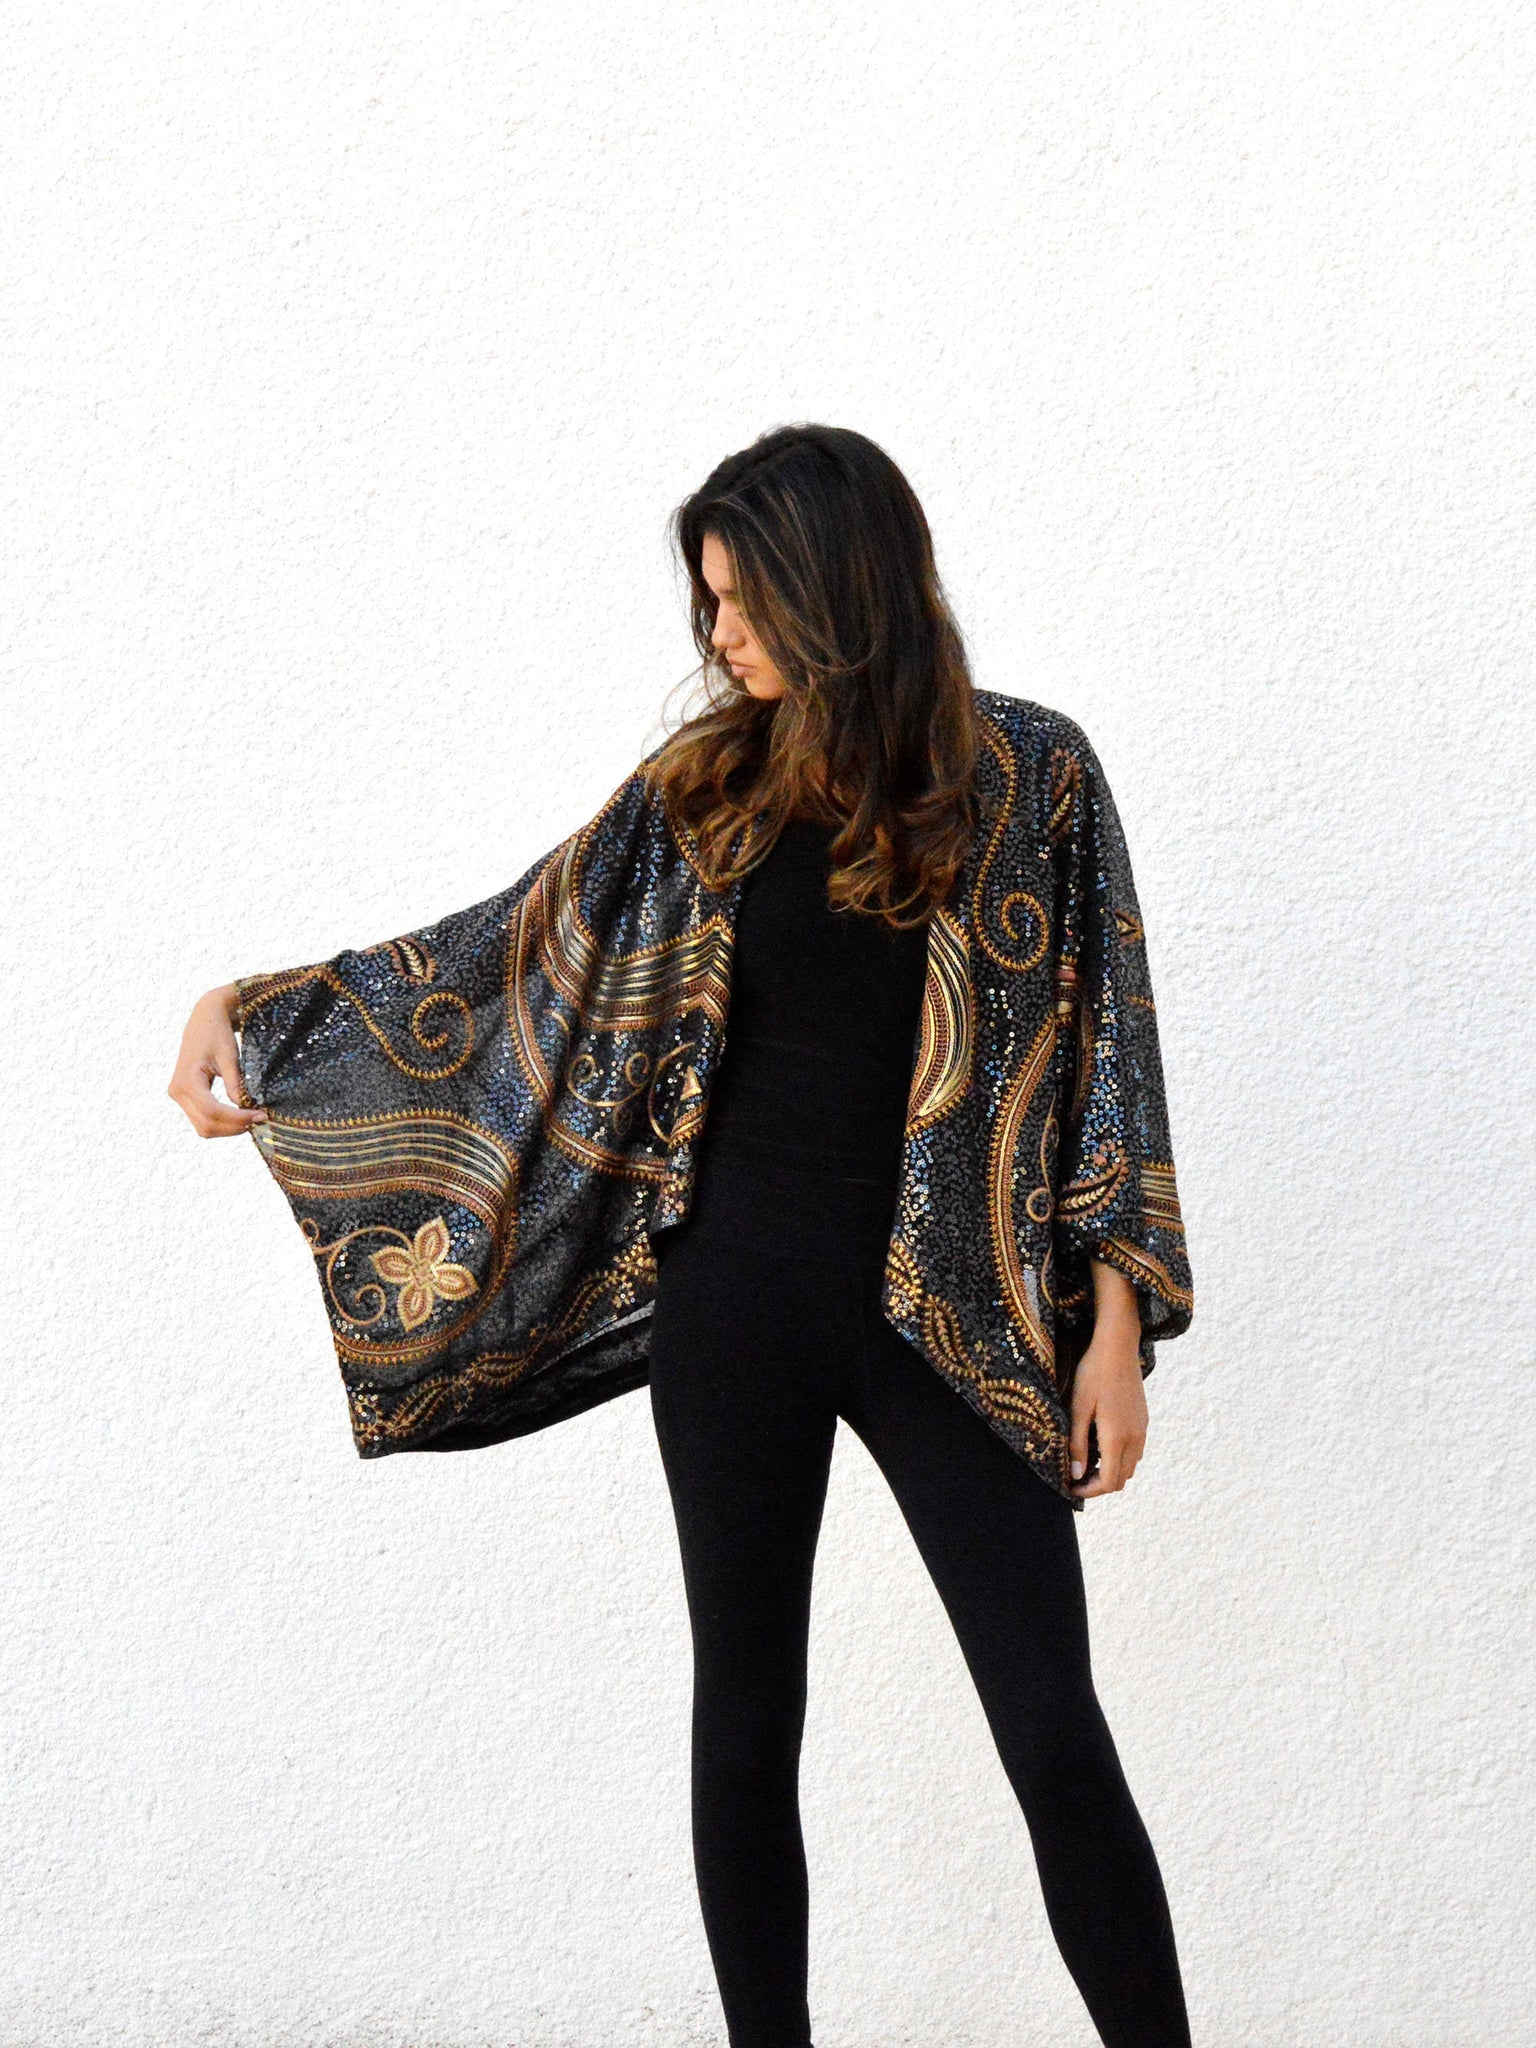 Woman in short kimono jacket with black and gold paisley sequins.